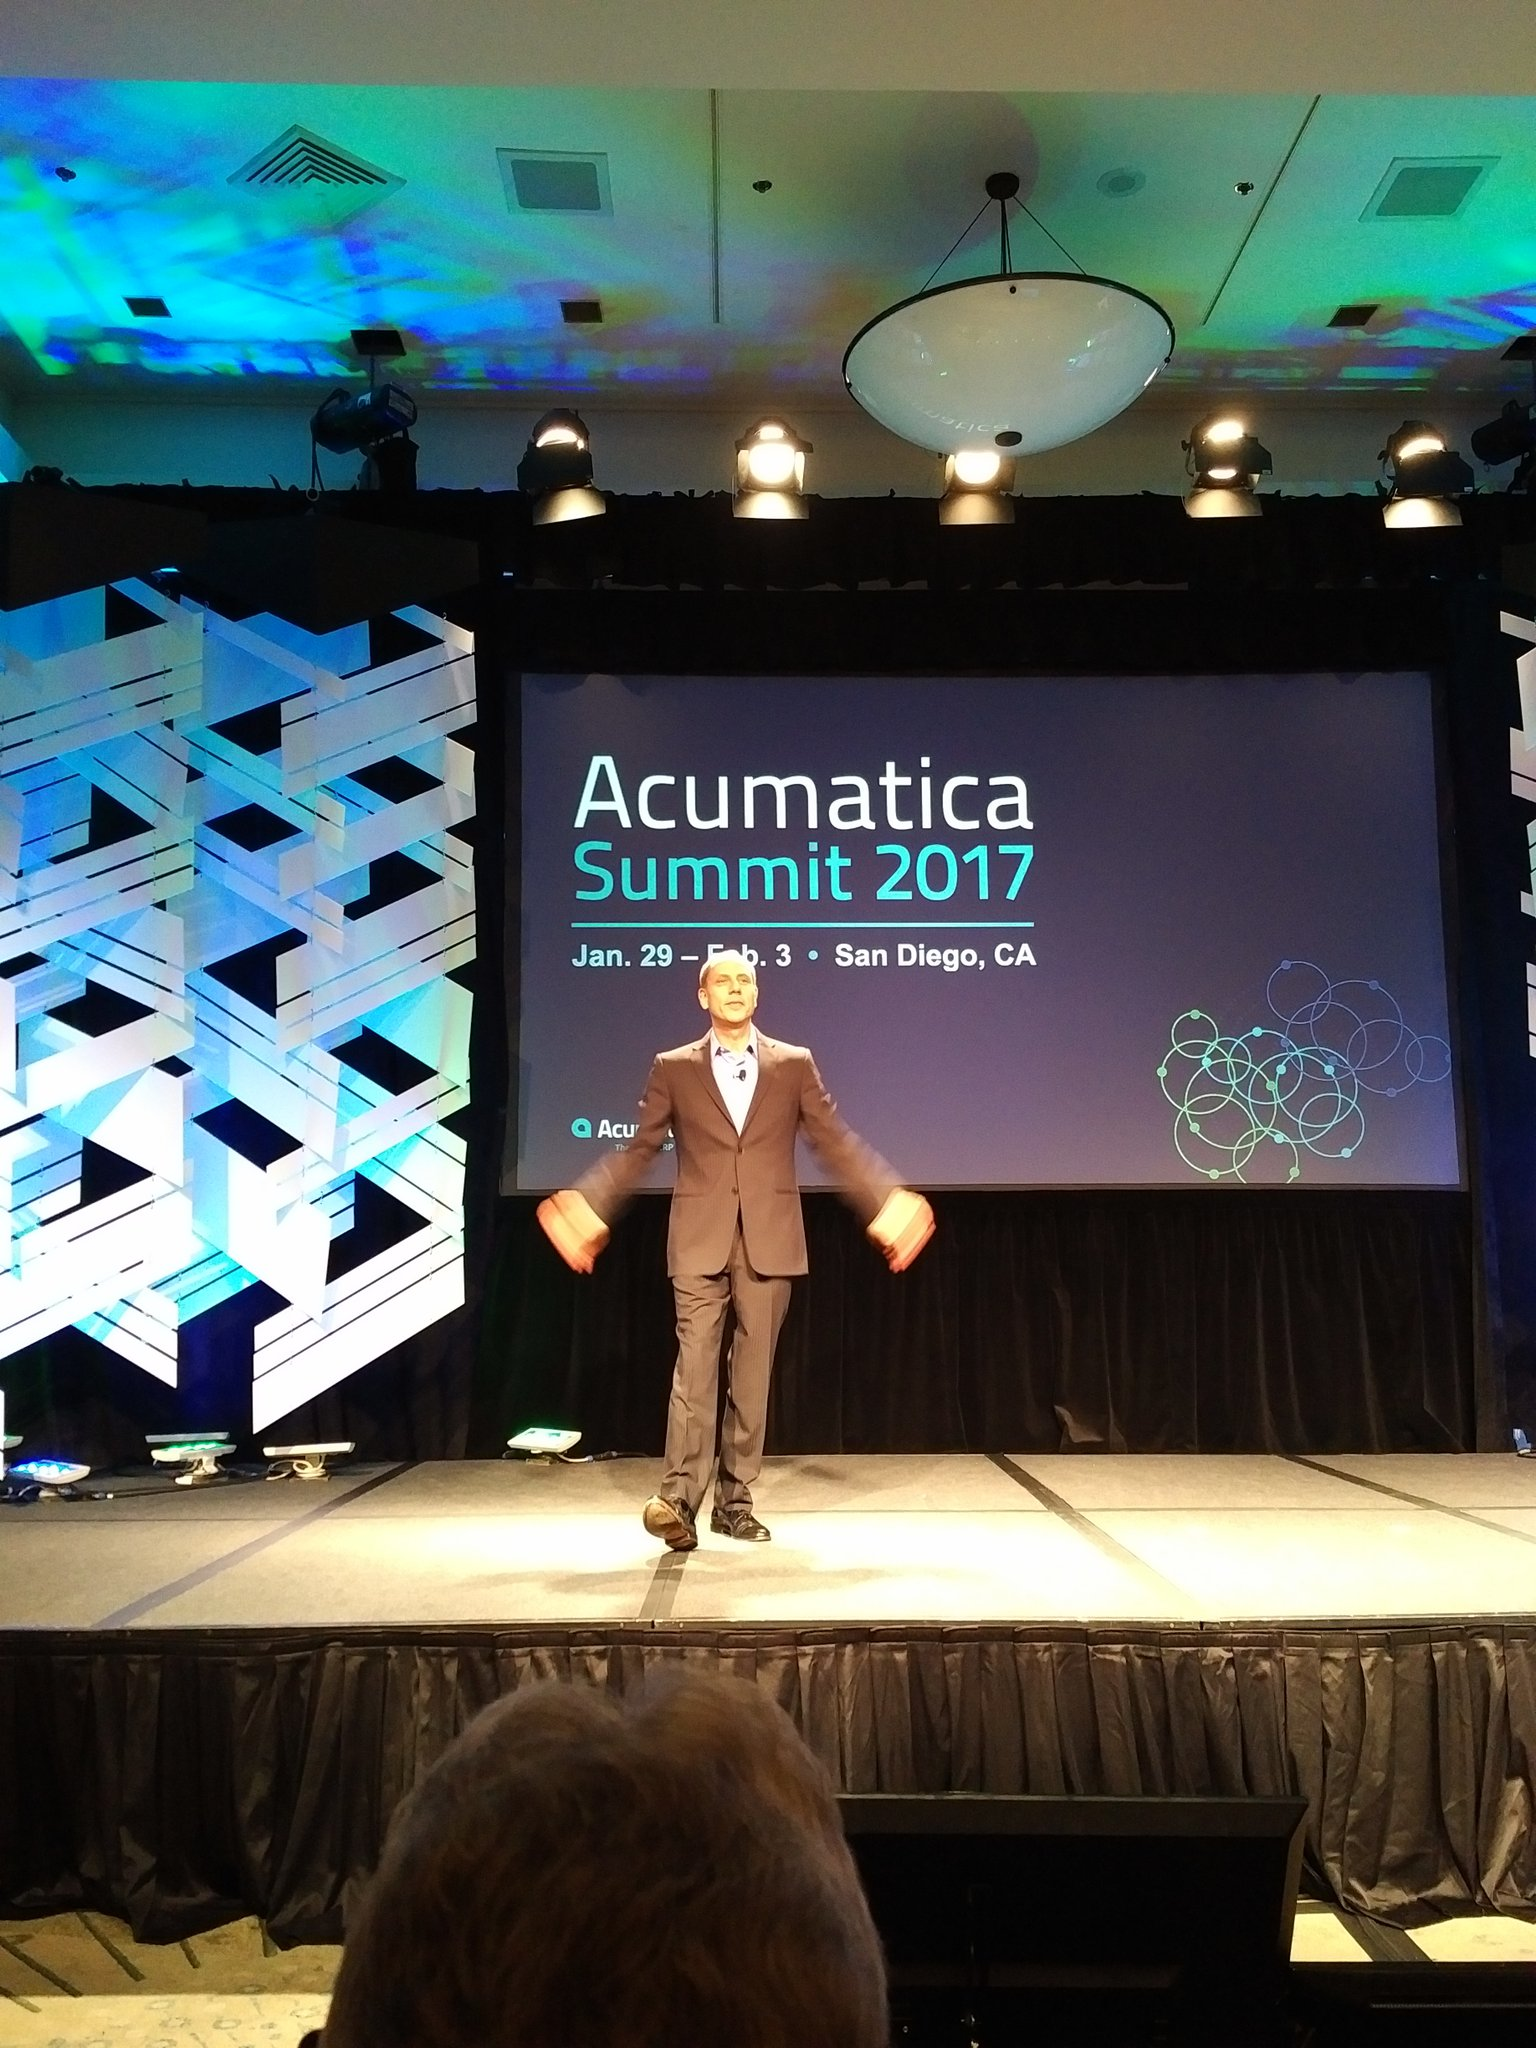 And we are off with @Jon_Roskill - he is literally taking off in my shot. ;-) #AcumaticaSummit https://t.co/sX6rZ63GYV